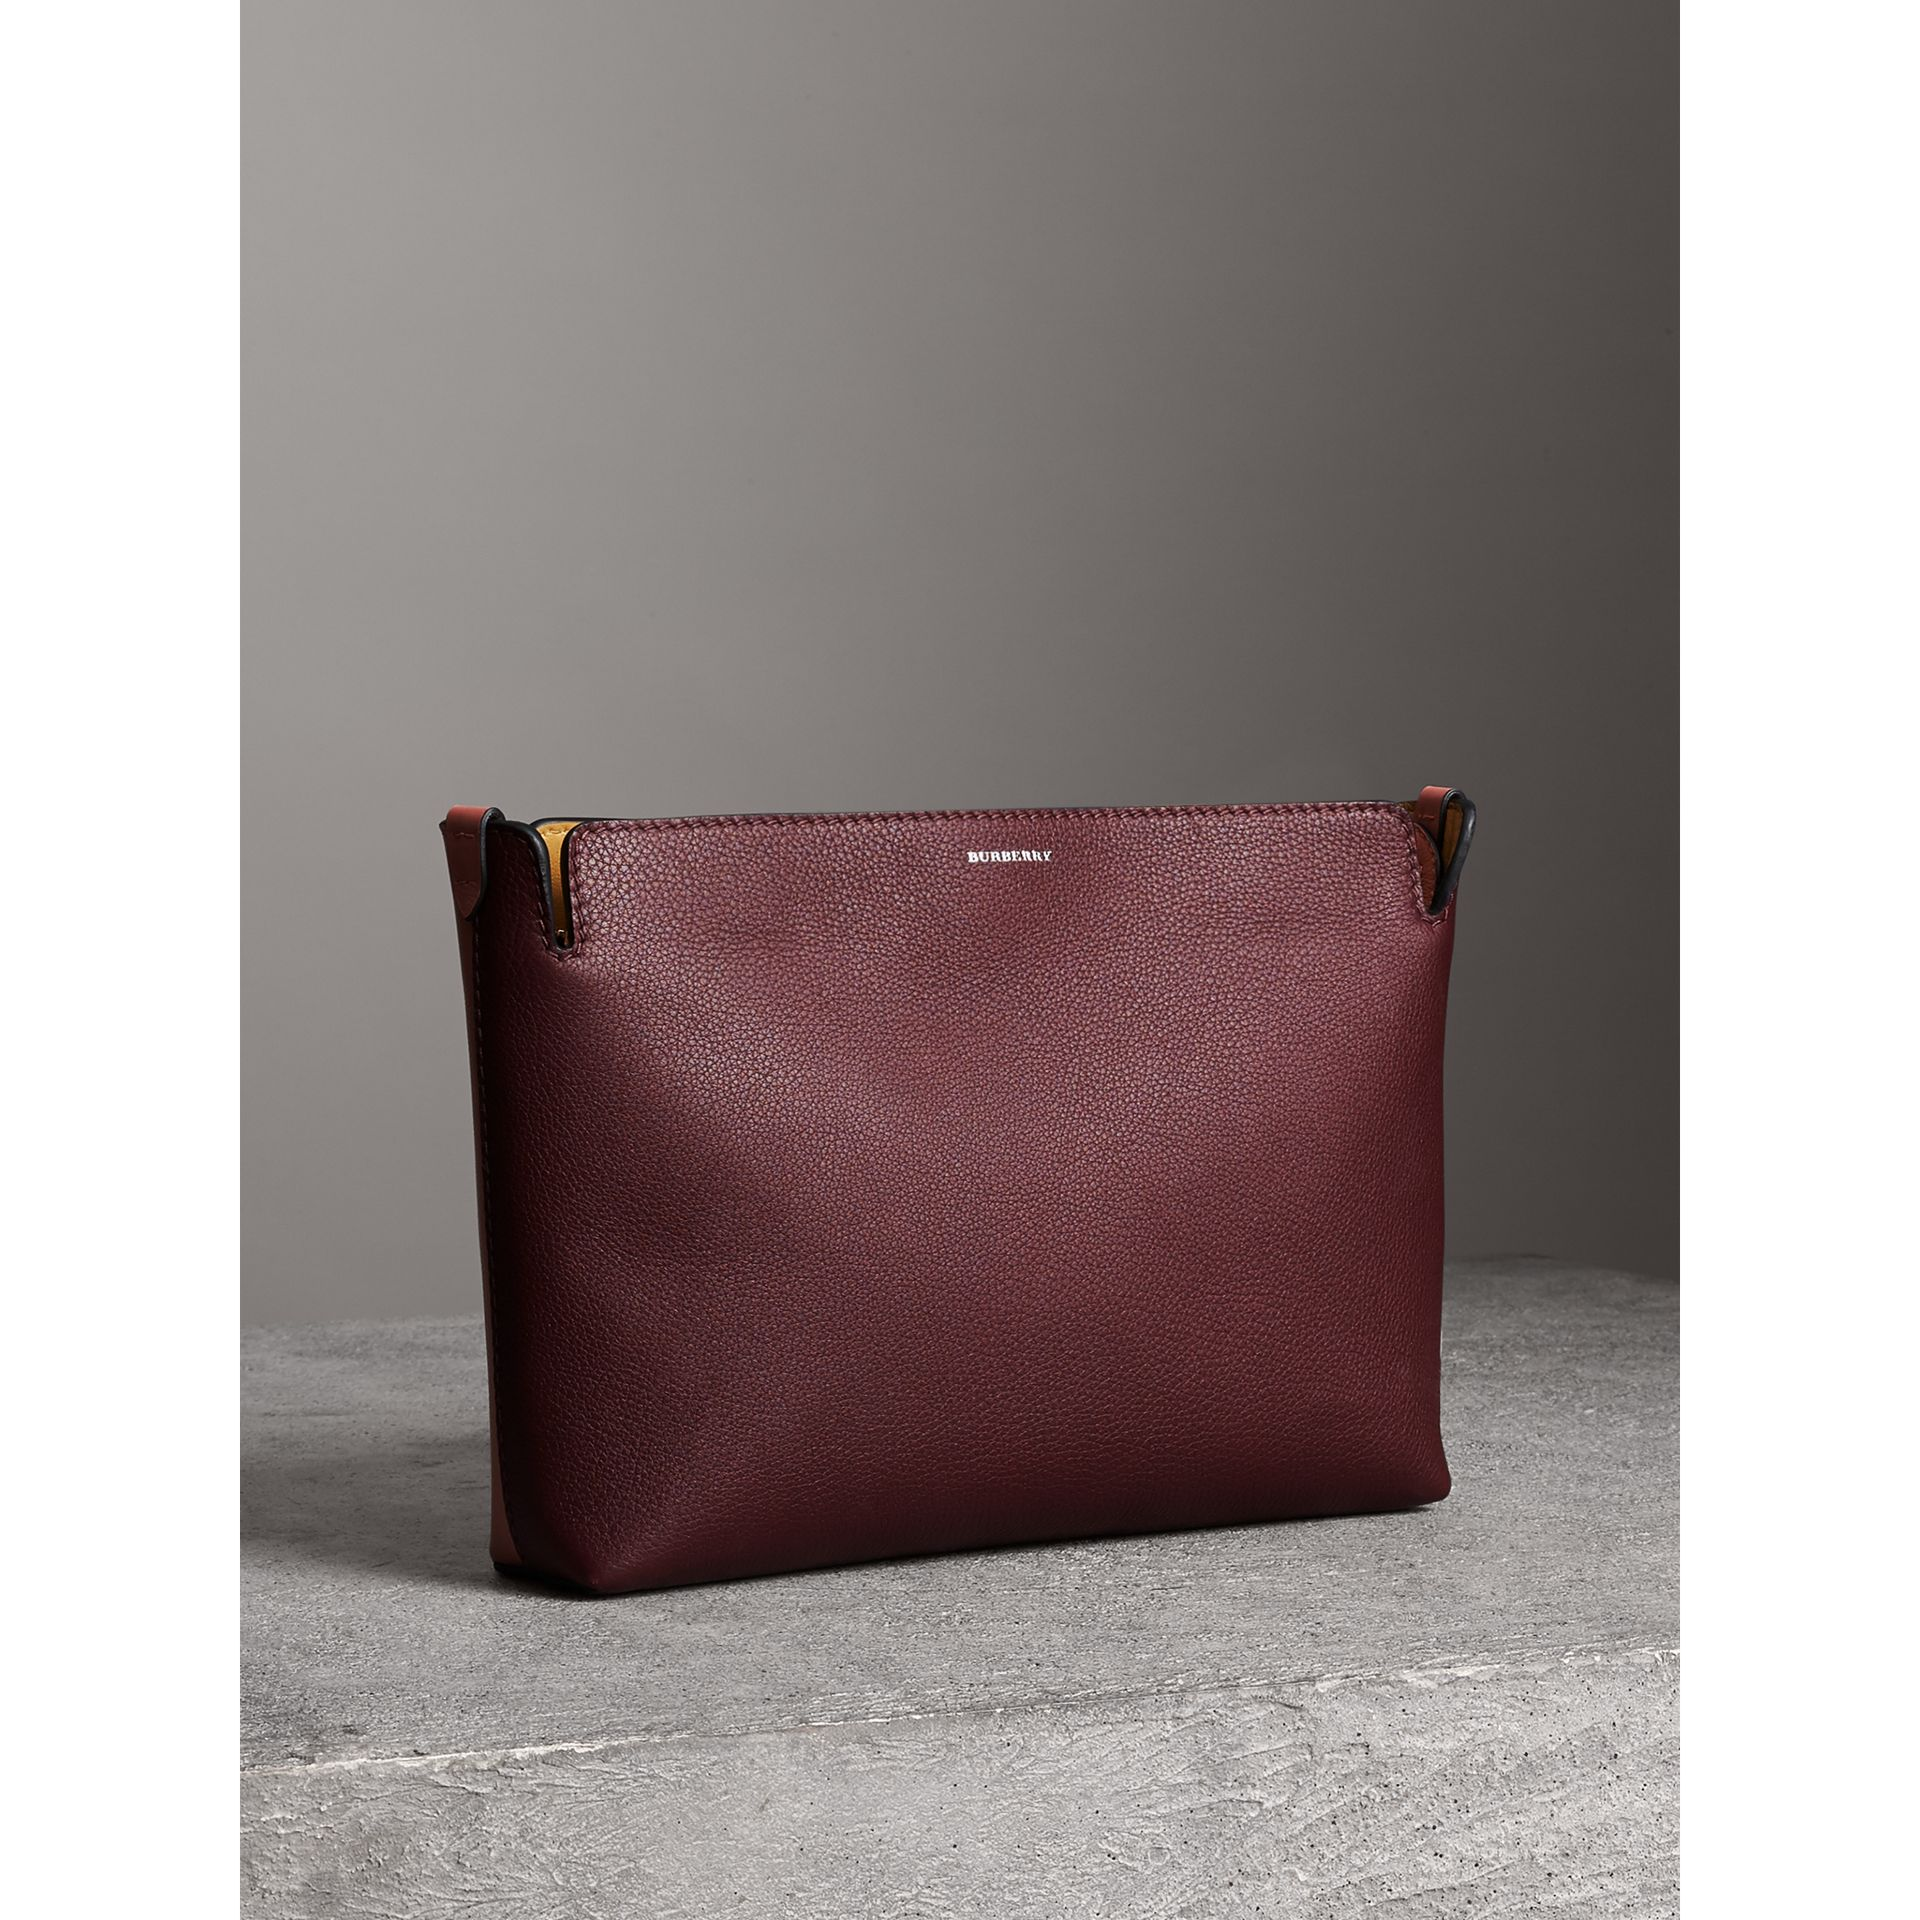 Medium Tri-tone Leather Clutch in Deep Claret/dusty Rose - Women | Burberry Hong Kong - gallery image 6